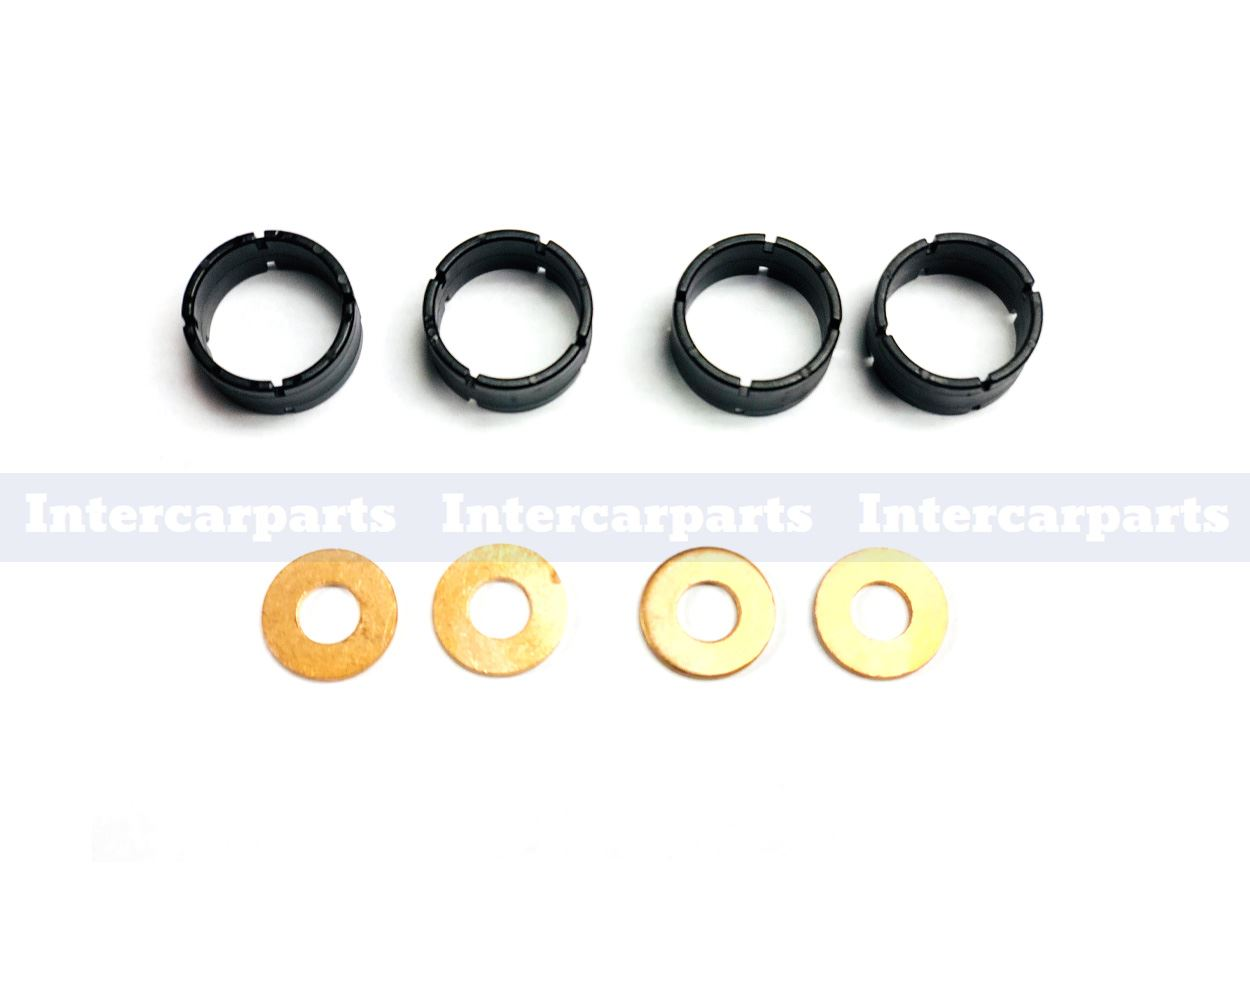 PEUGEOT CITROEN 2.0 HDi DIESEL INJECTOR COPPER SEAL /& PROTECTOR WASHER GENUINE